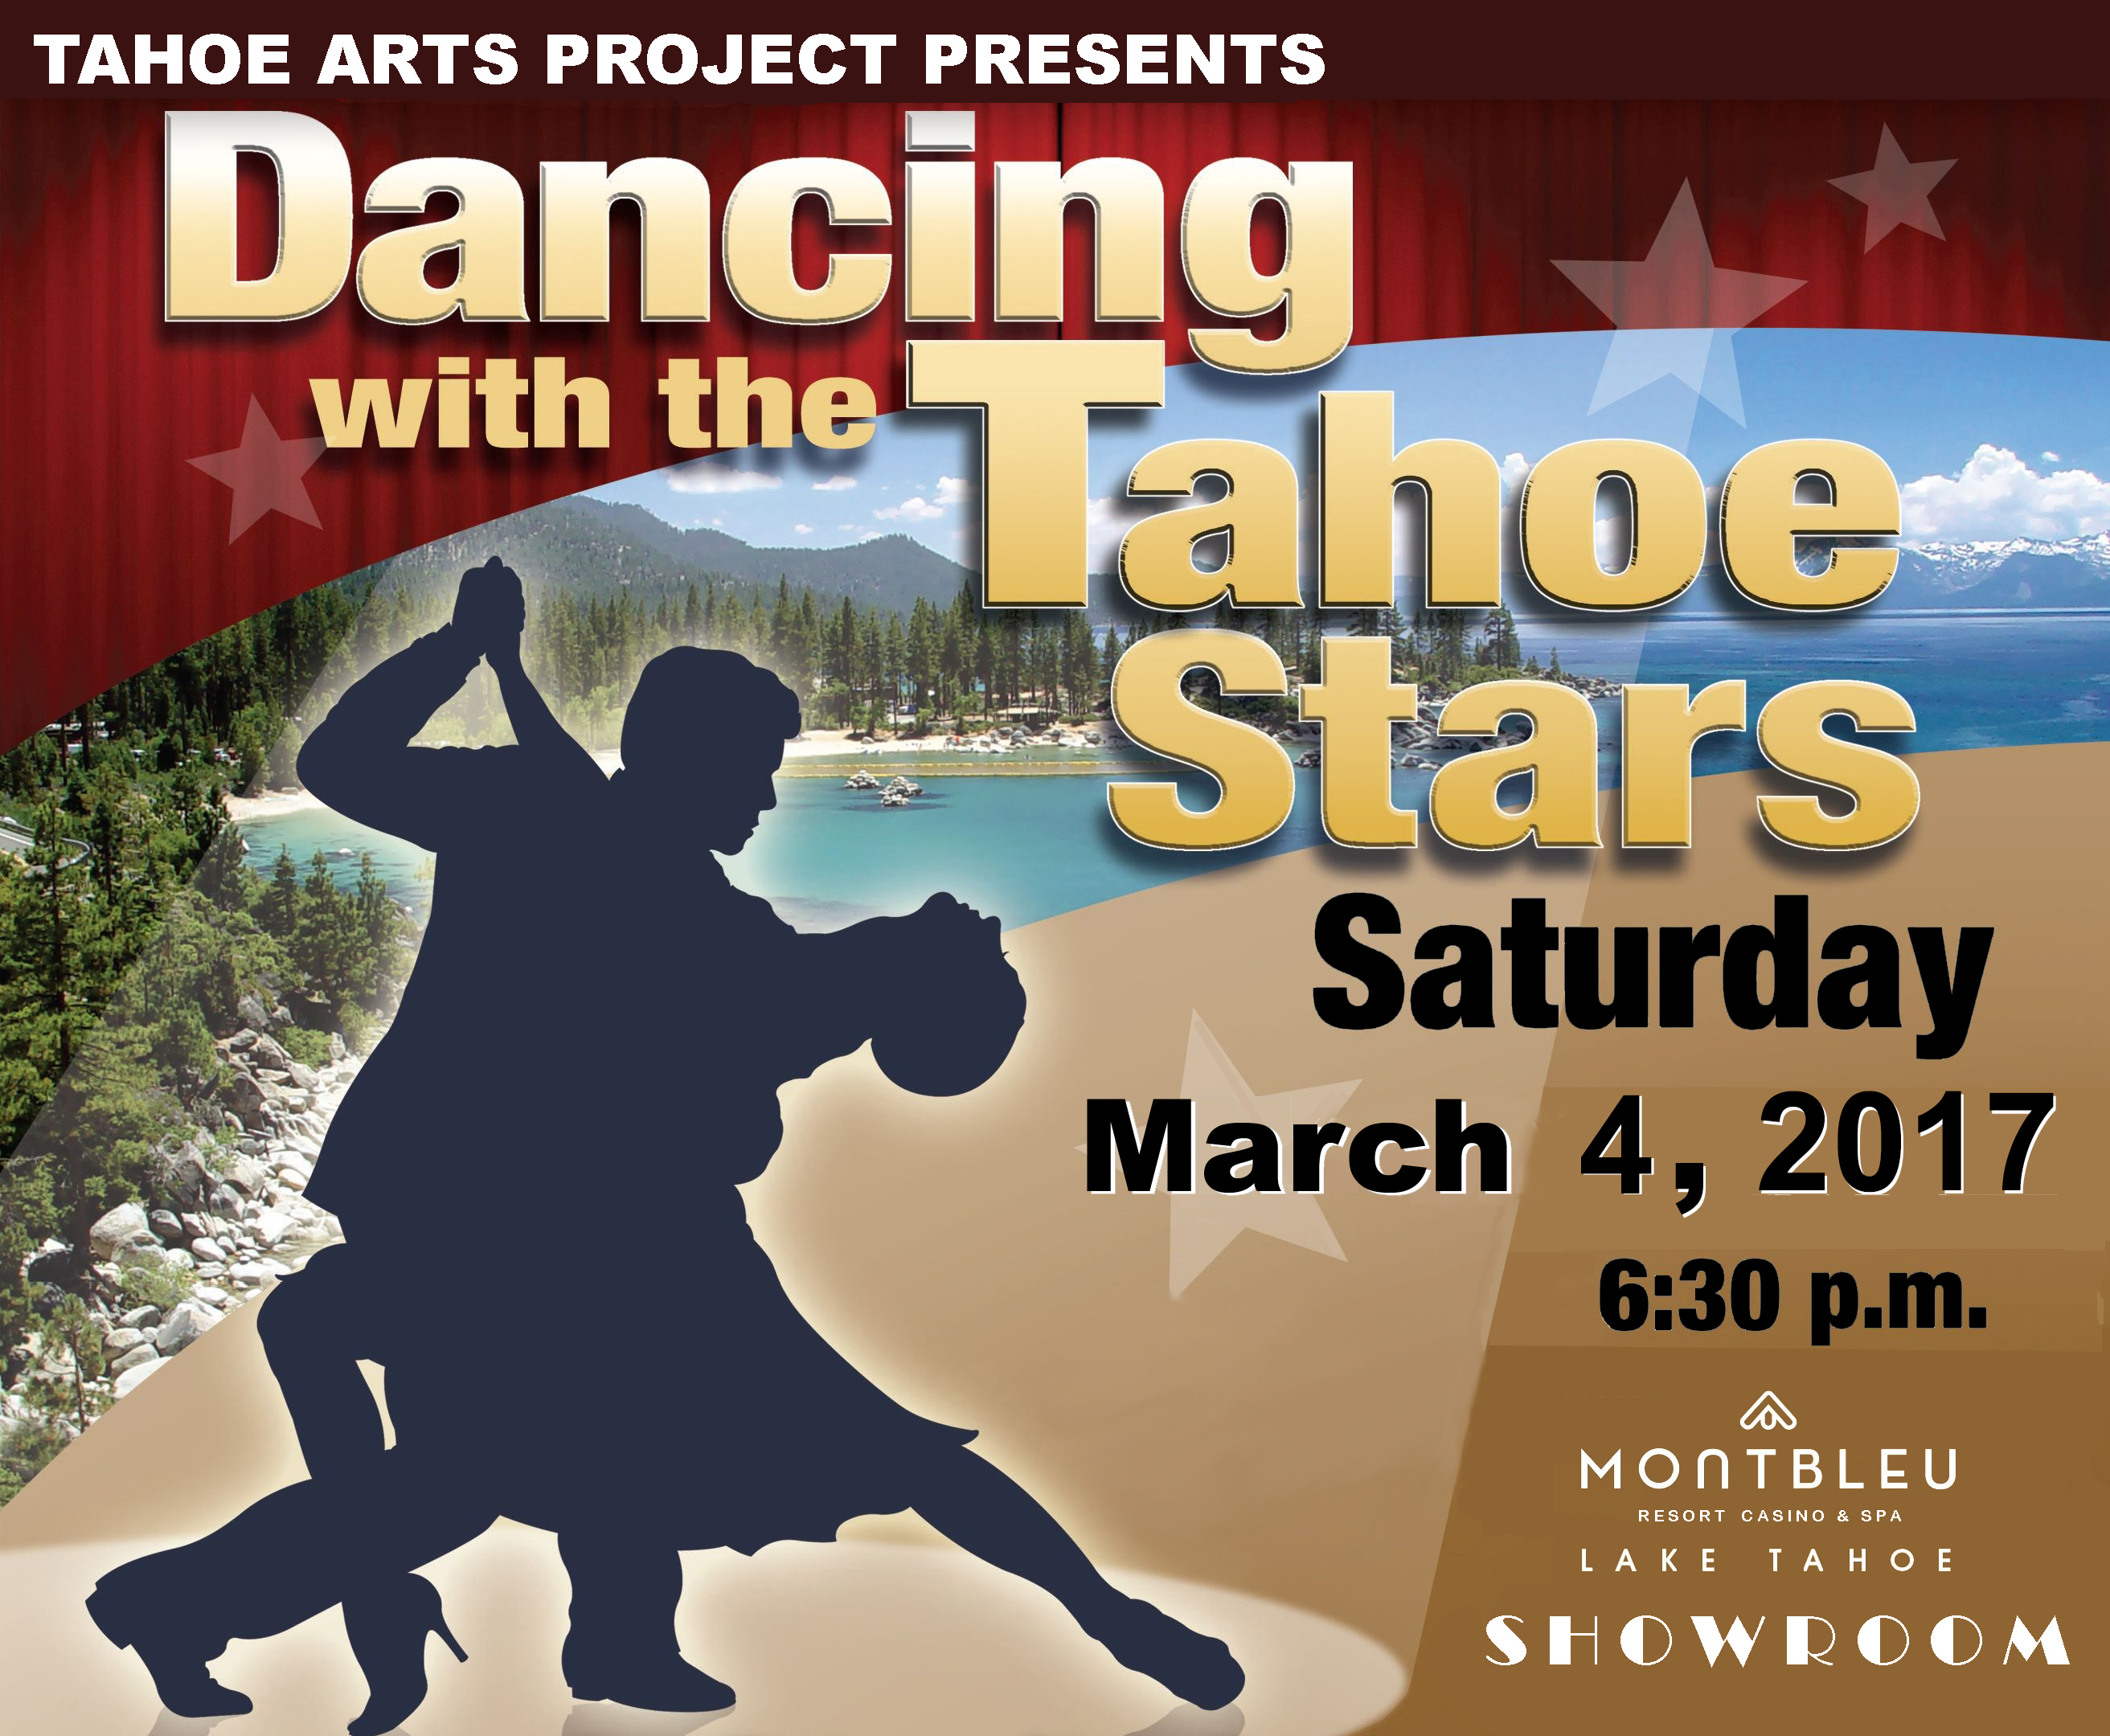 Dancing with the Tahoe Stars